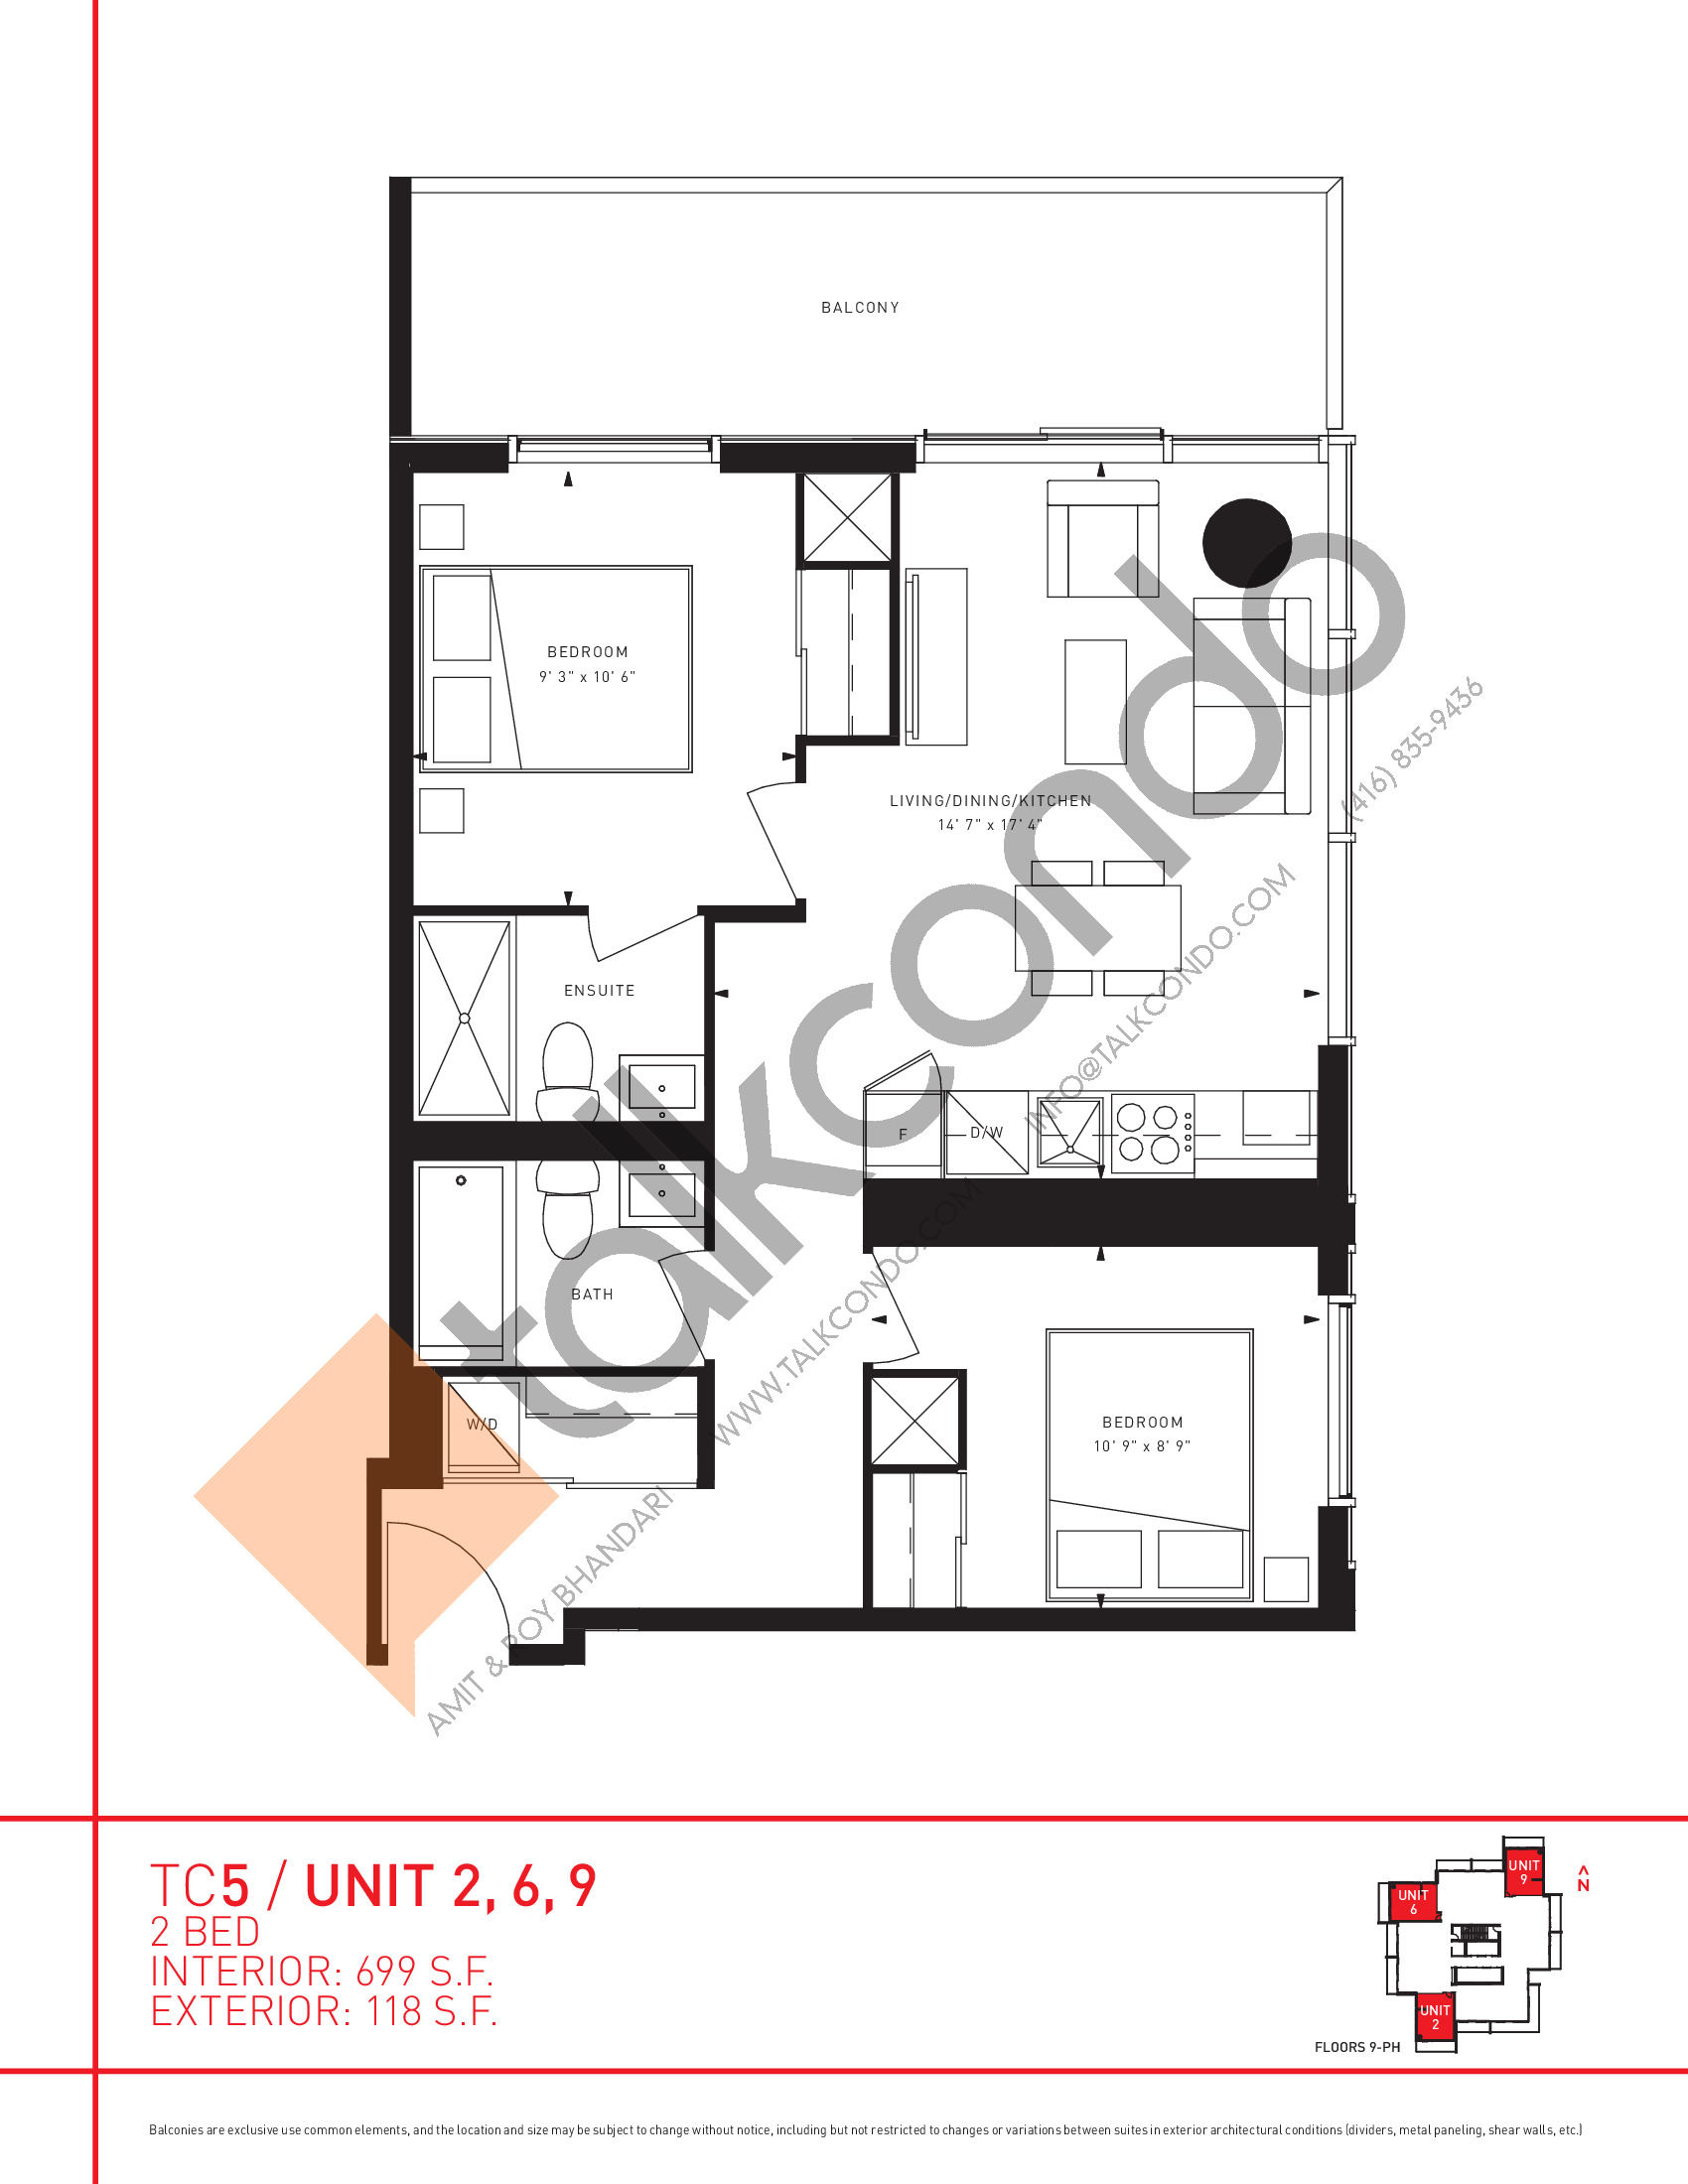 Unit 2, 6, 9 Floor Plan at Transit City 5 (TC5) Condos - 699 sq.ft